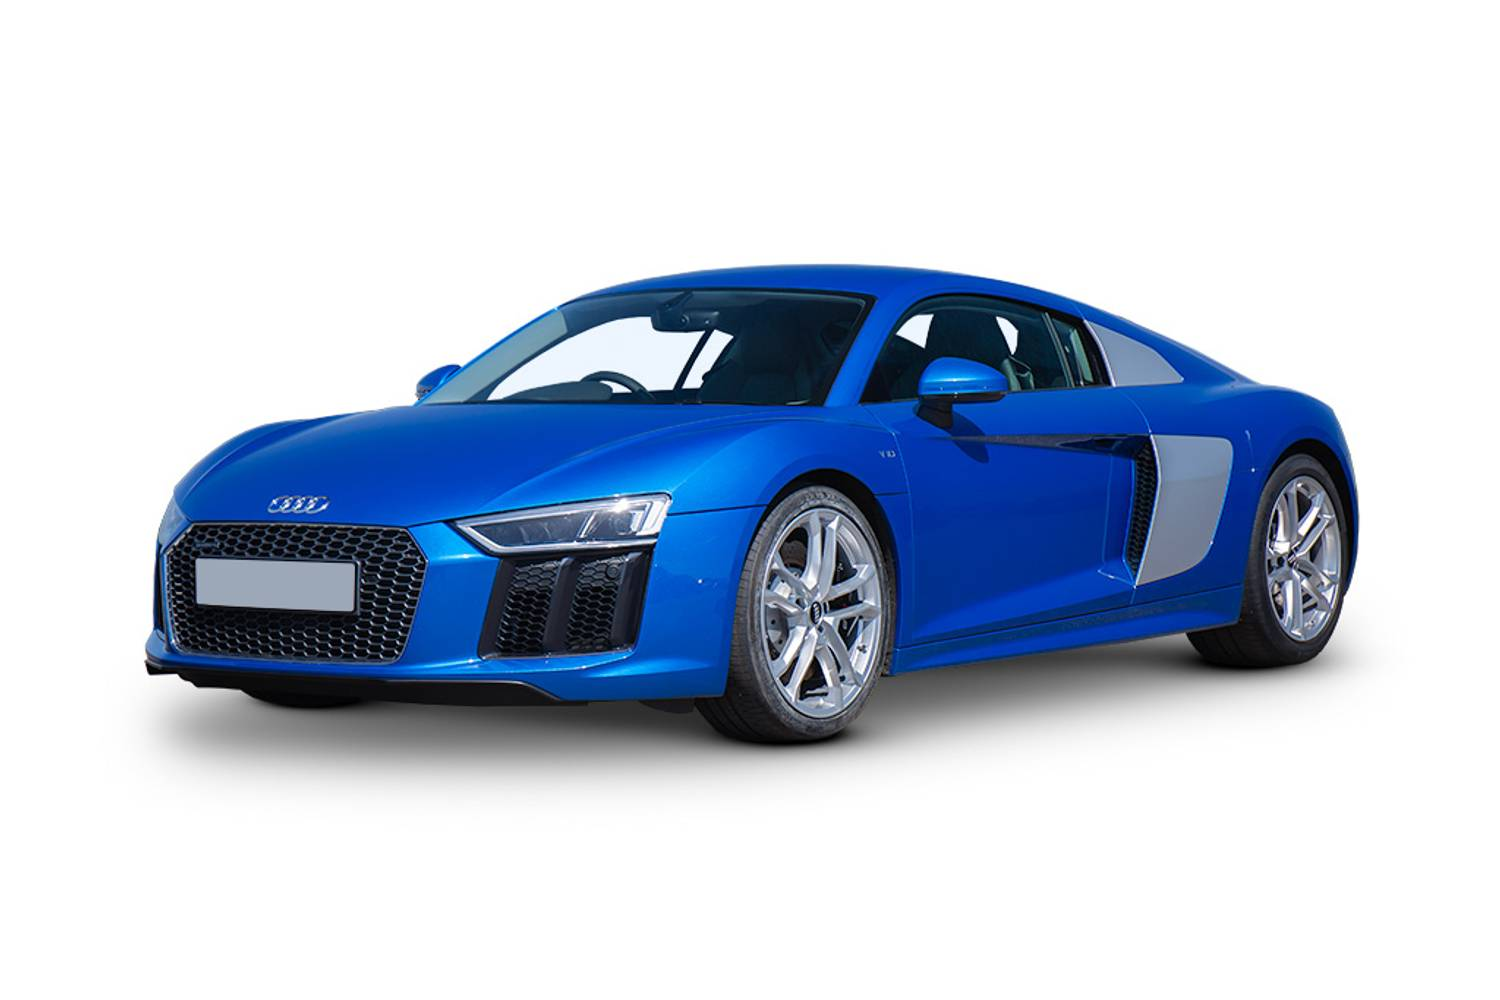 new audi r8 coupe 5 2 fsi v10 plus quattro 2 door s tronic 2015 for sale. Black Bedroom Furniture Sets. Home Design Ideas